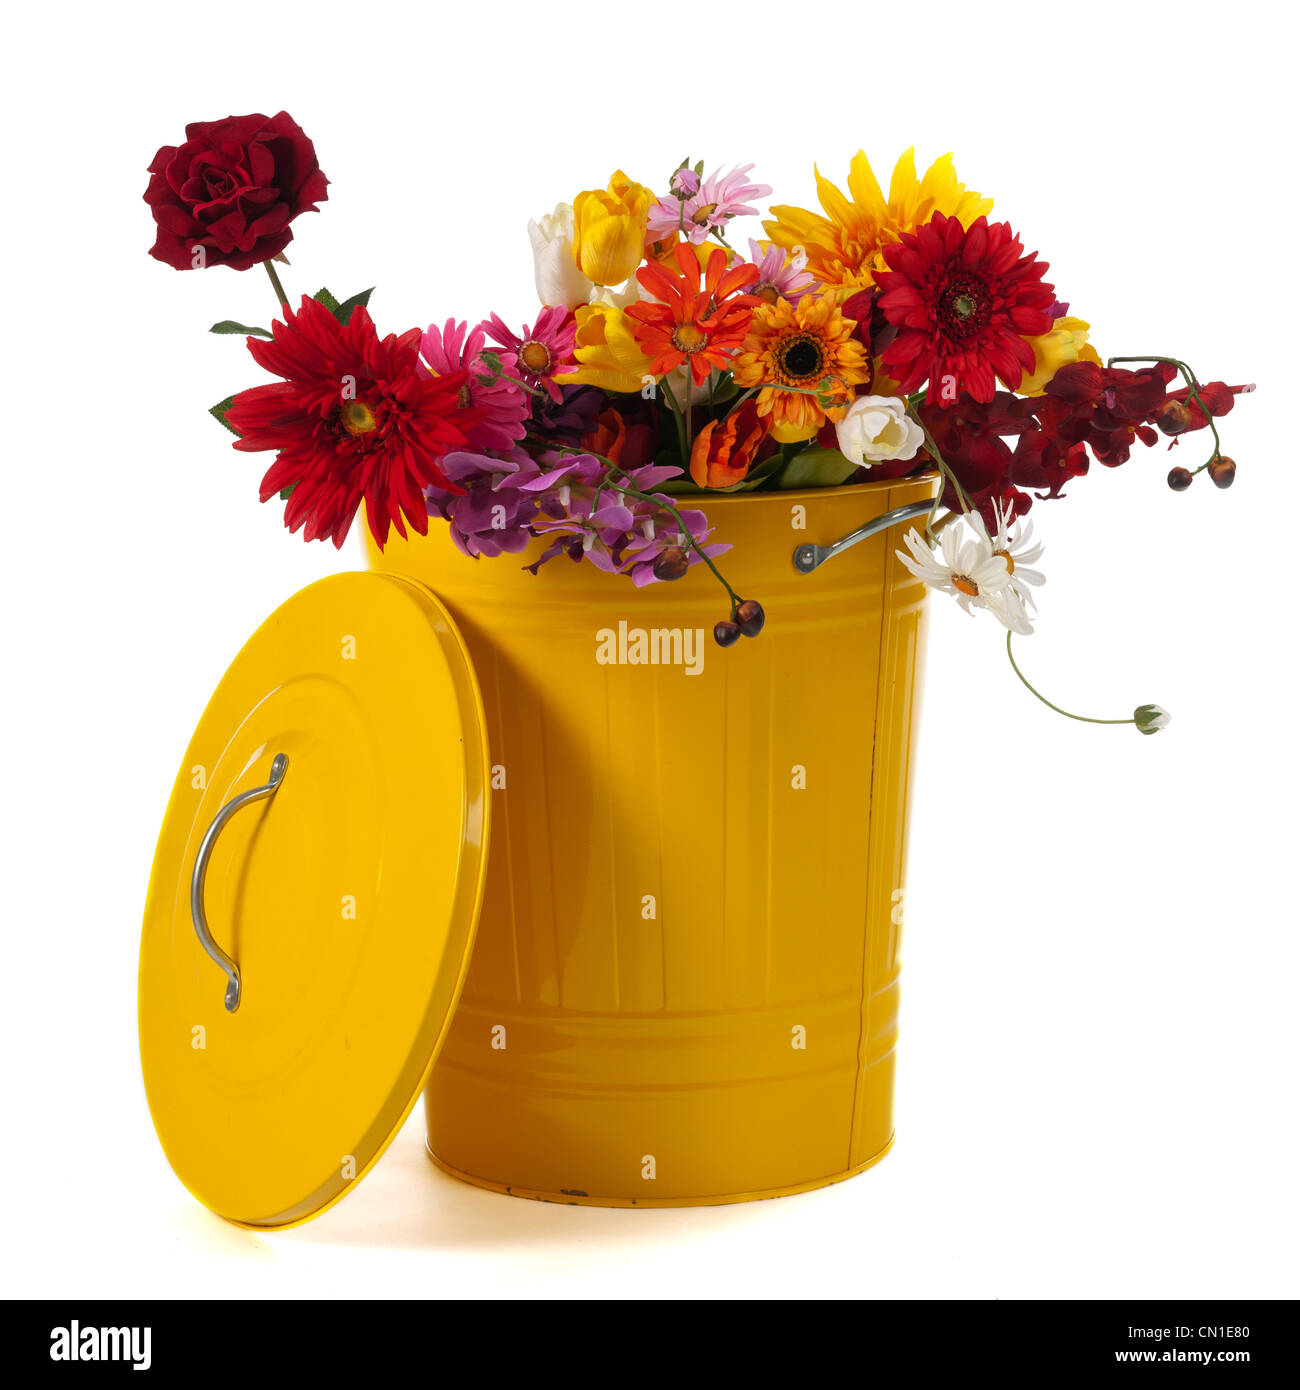 Yellow trash can filled with flowers isolated over white background Stock Photo